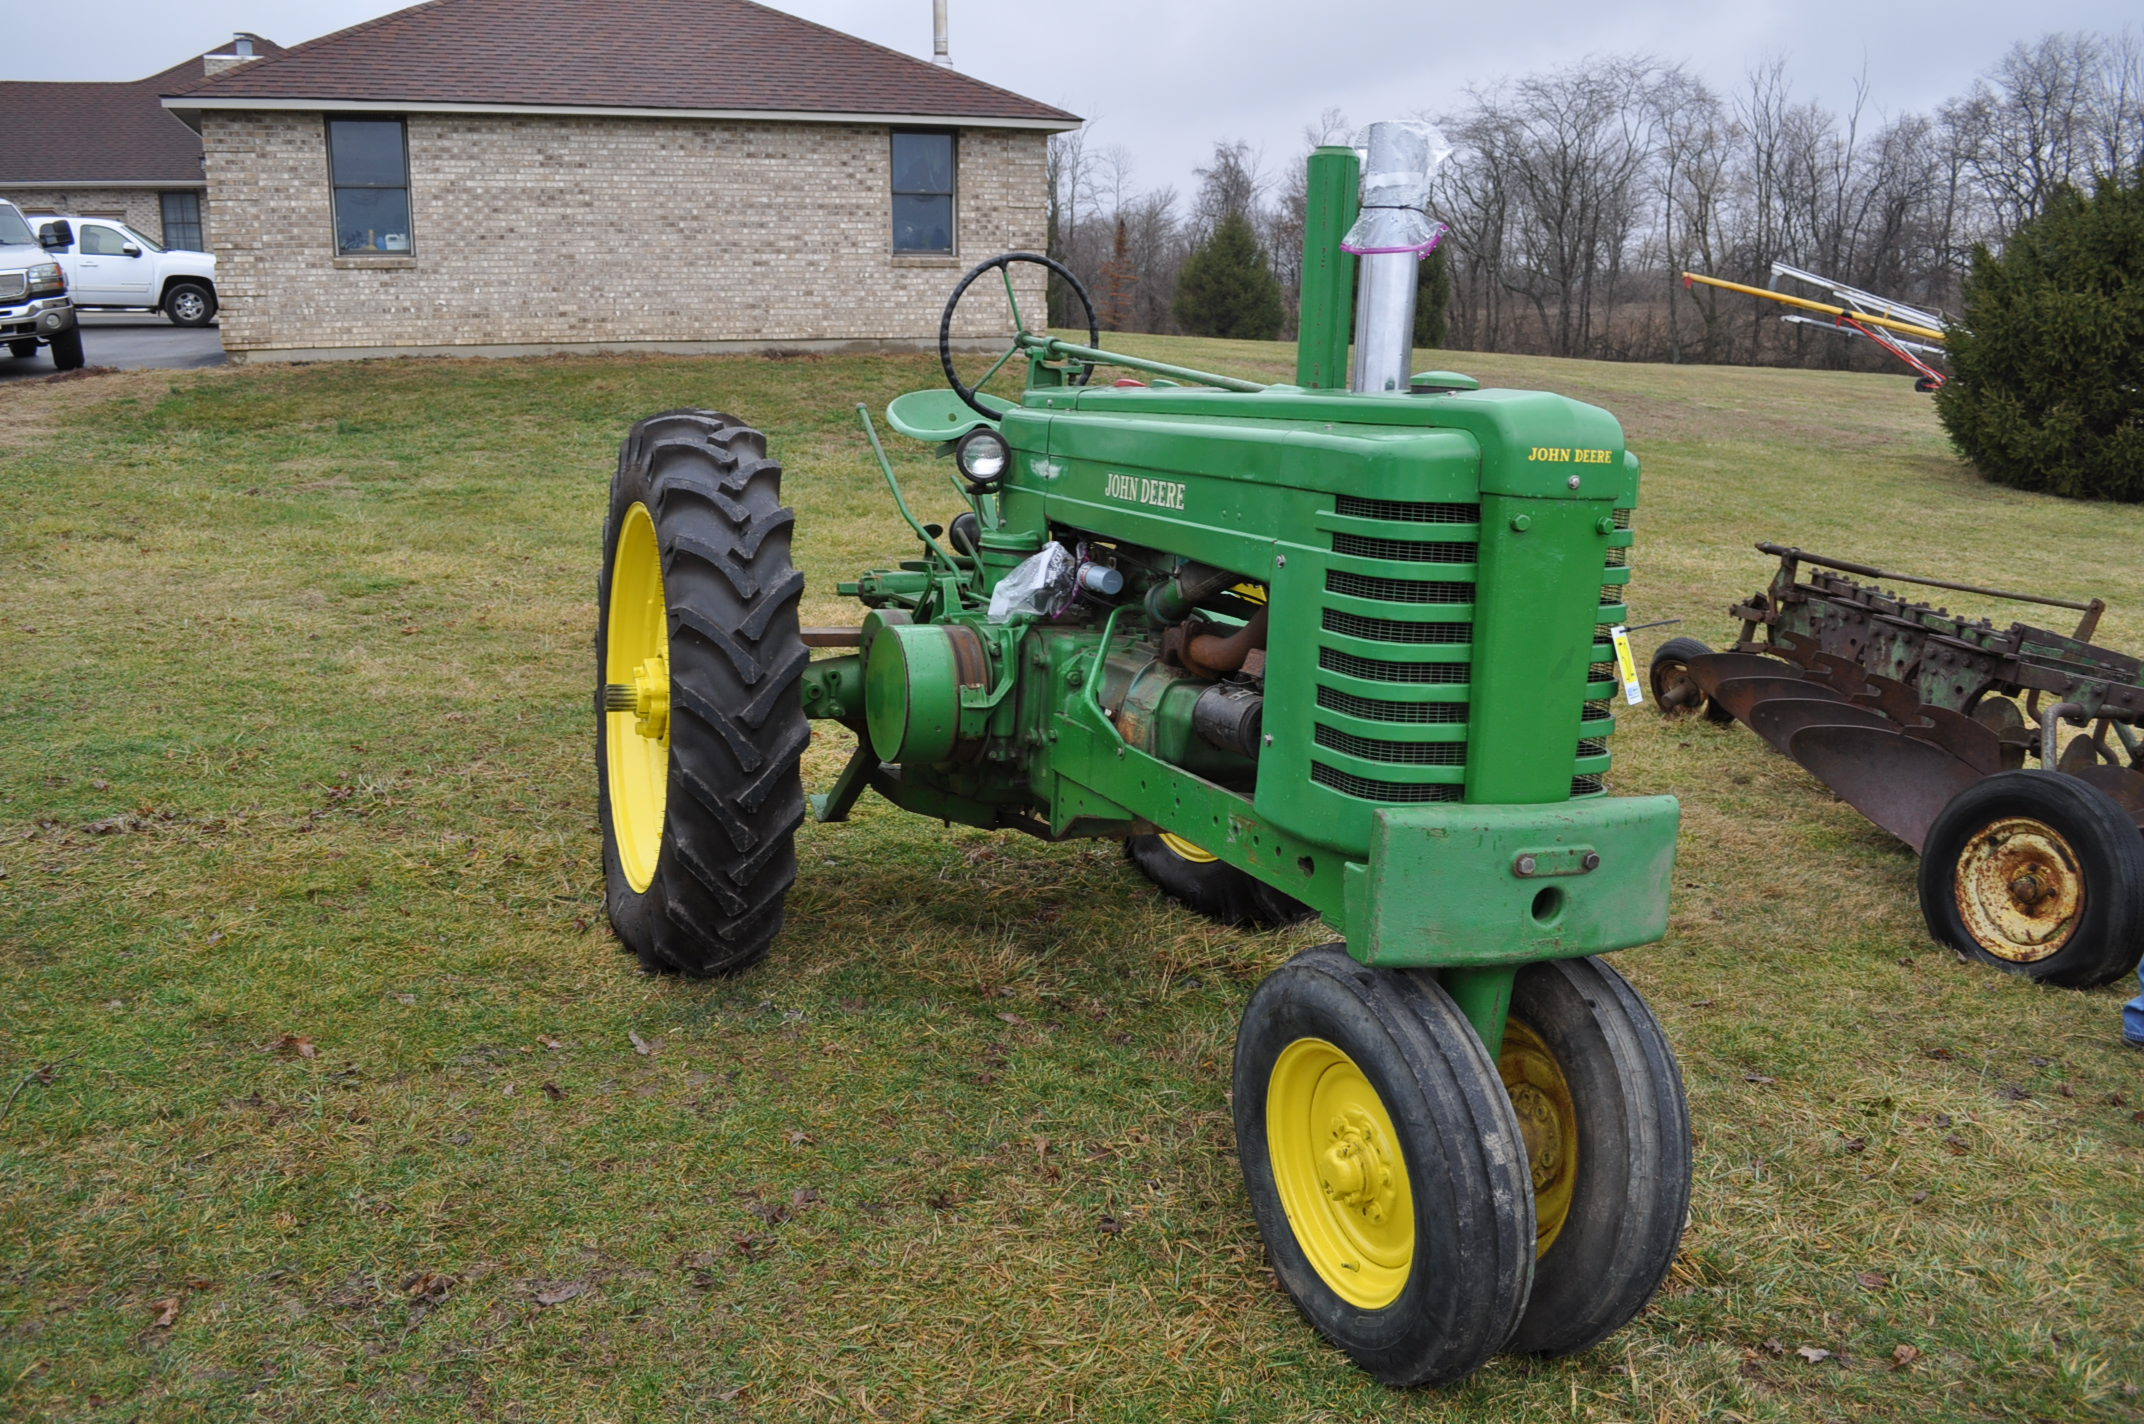 1942 John Deere Styled A, New 12.4-38 rear tires, narrow front, 540 pto - Image 4 of 15